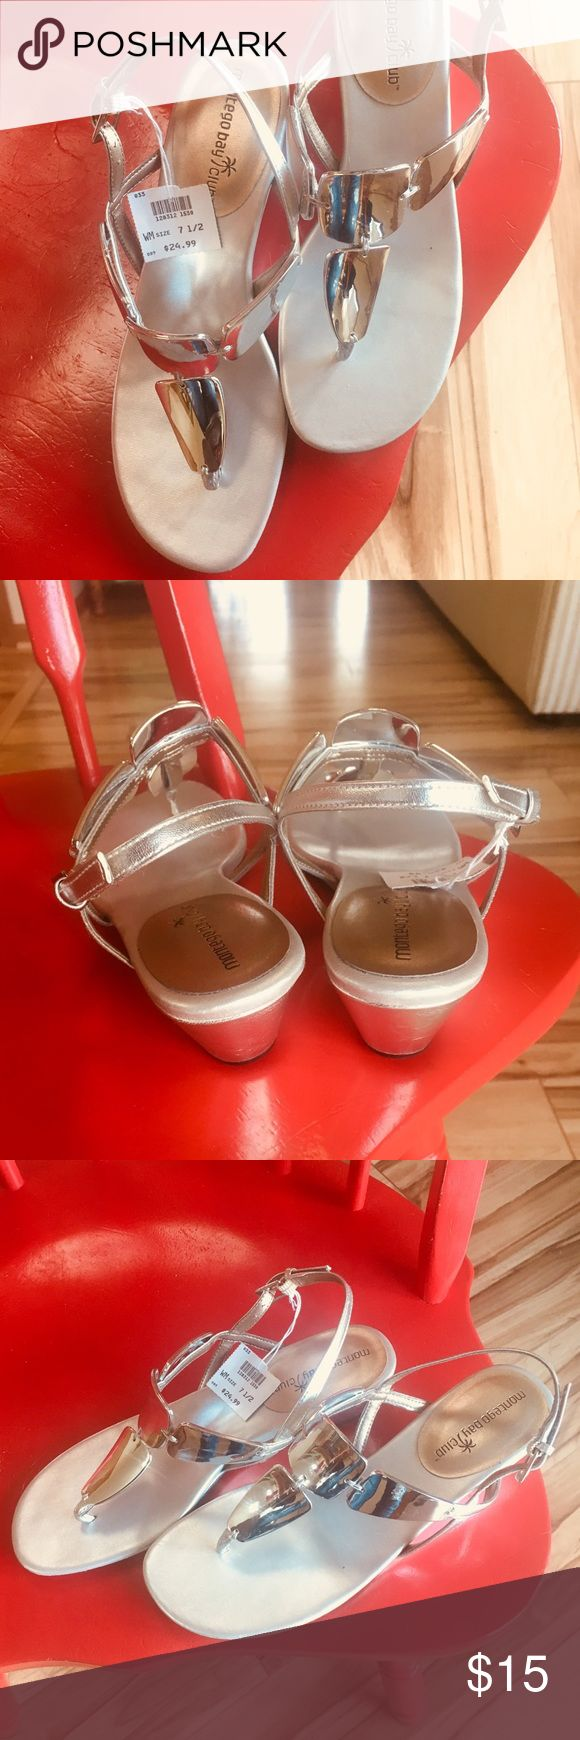 Montego Bay Club Metallic/Silver Sandals Beautiful Silver Sandals, never worn Adjustable heel strap   All Man Made Material Montego Bay Club Shoes Sandals